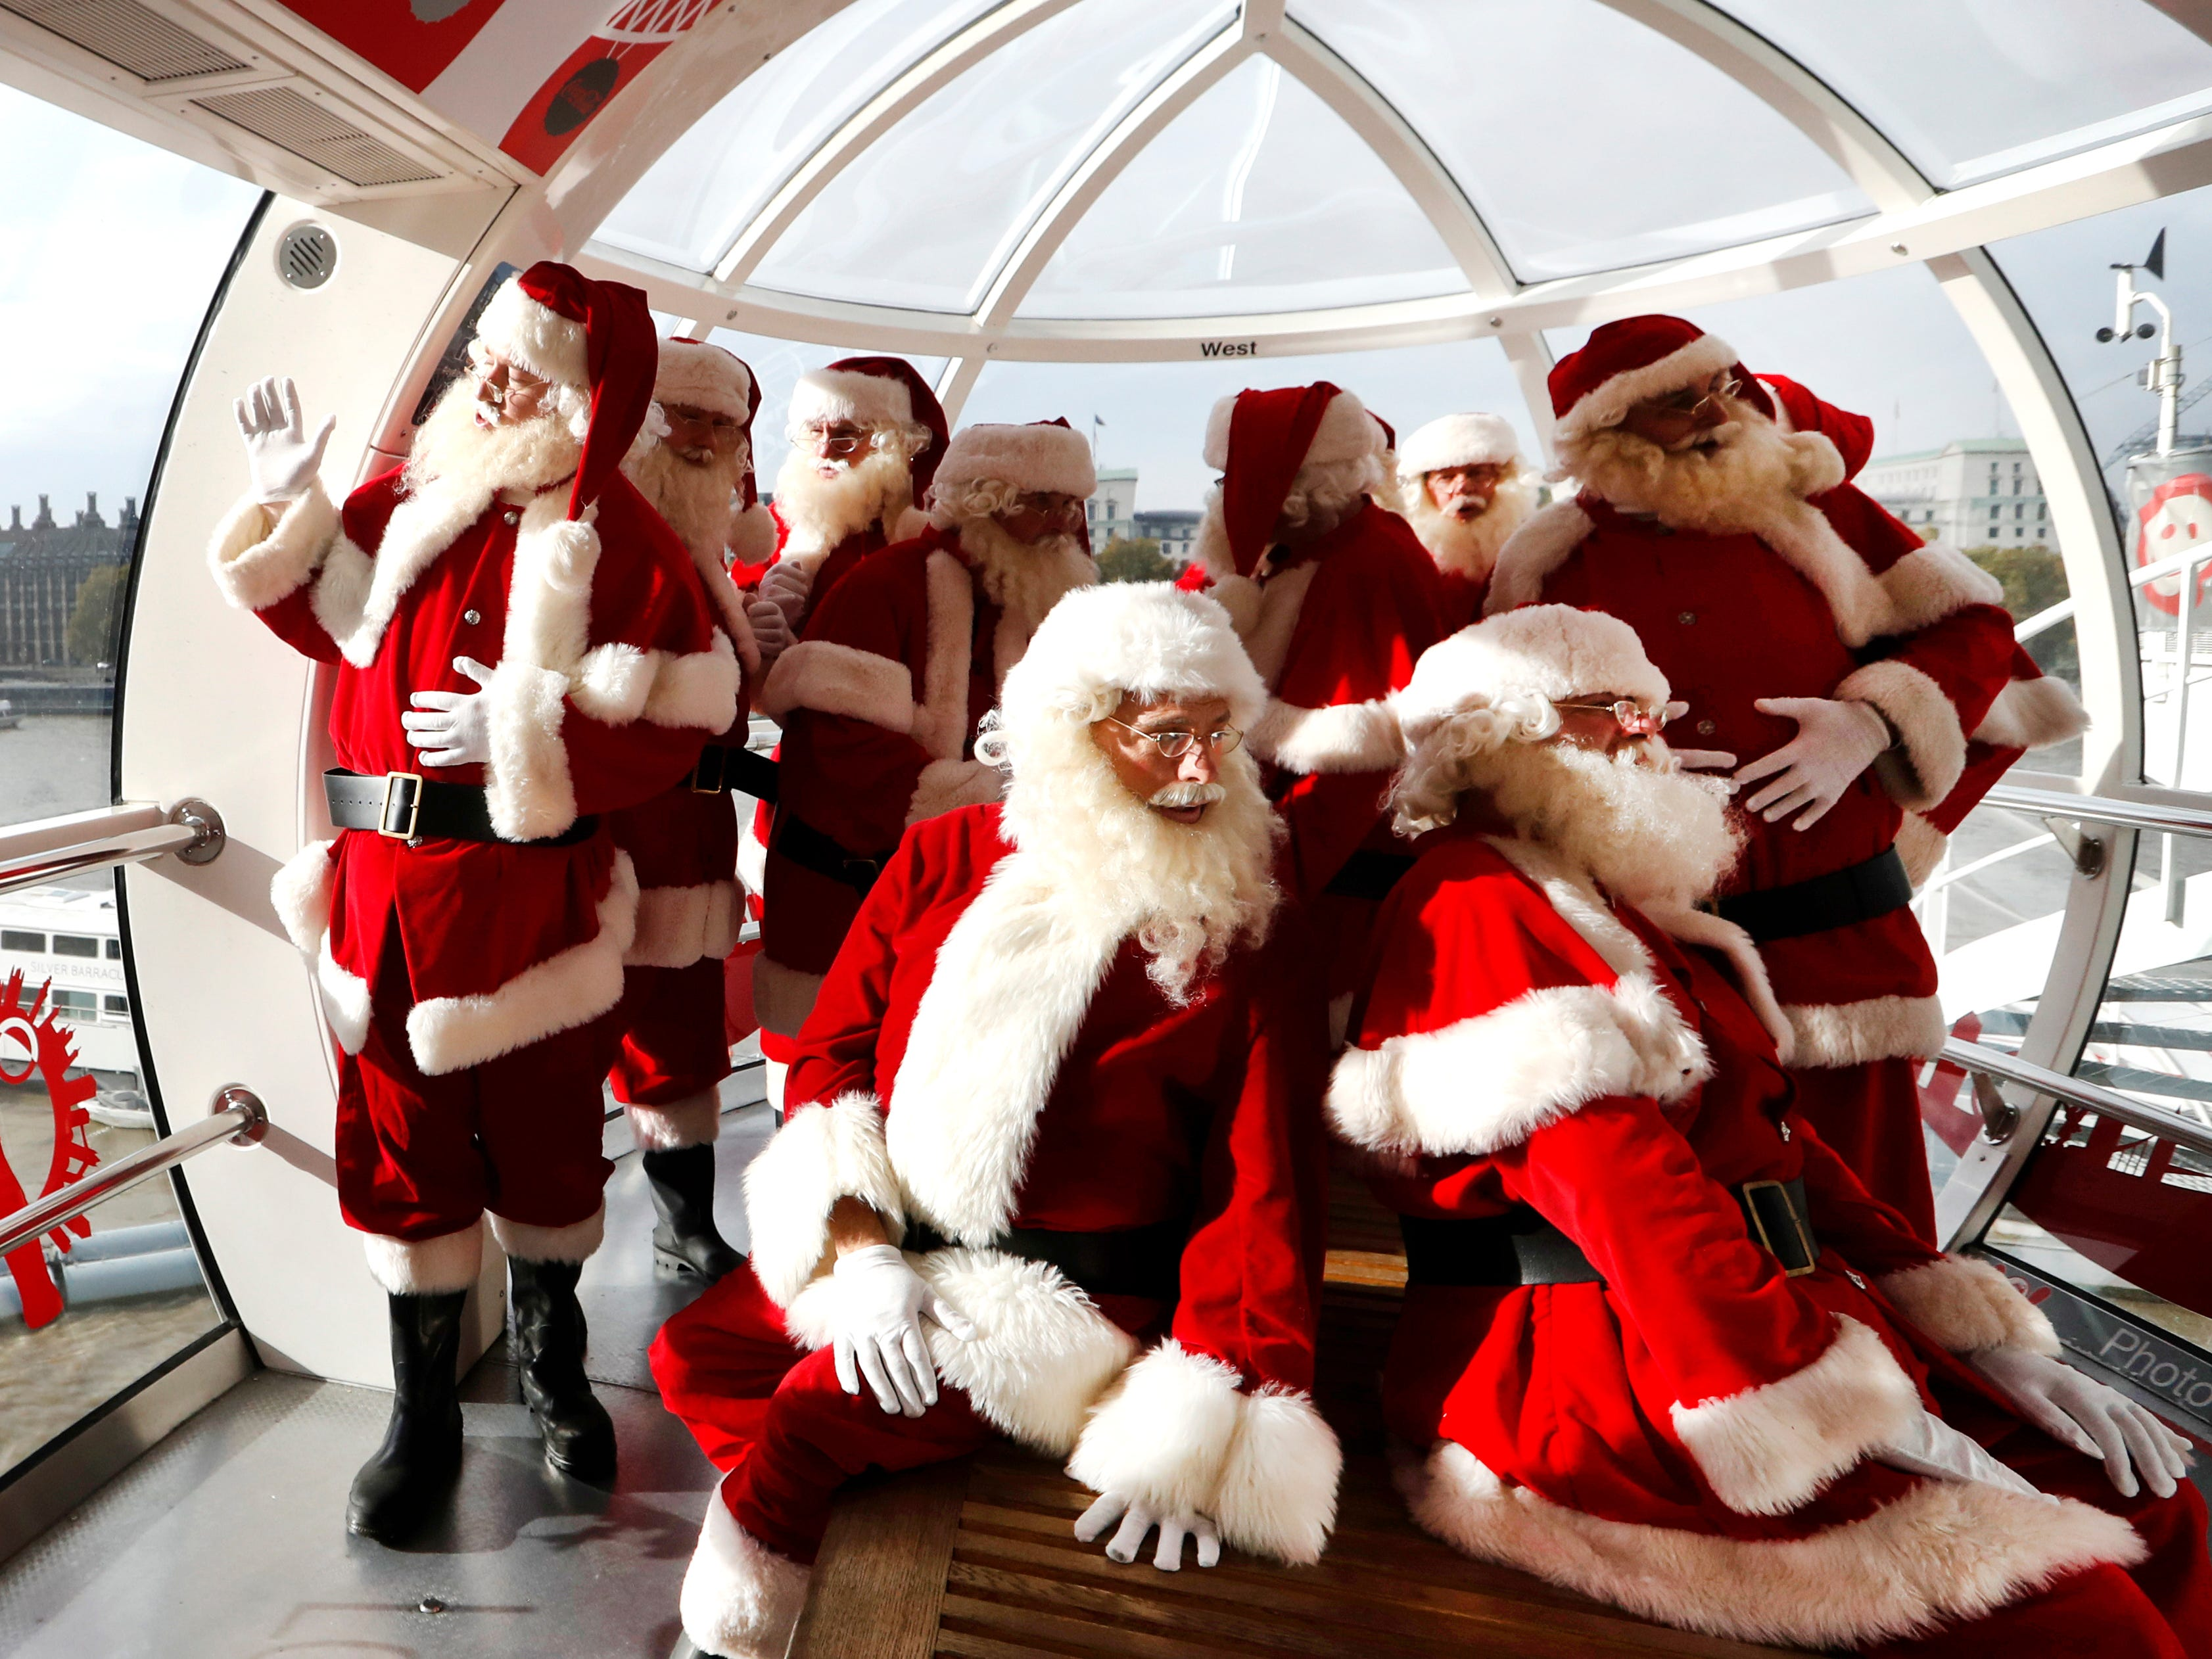 Santas from the Santa School take a look at the London skyline from a pod in the London Eye, Tuesday, Nov. 6, 2018. These Santas will be working in shops and malls around London as the Christmas season approaches.